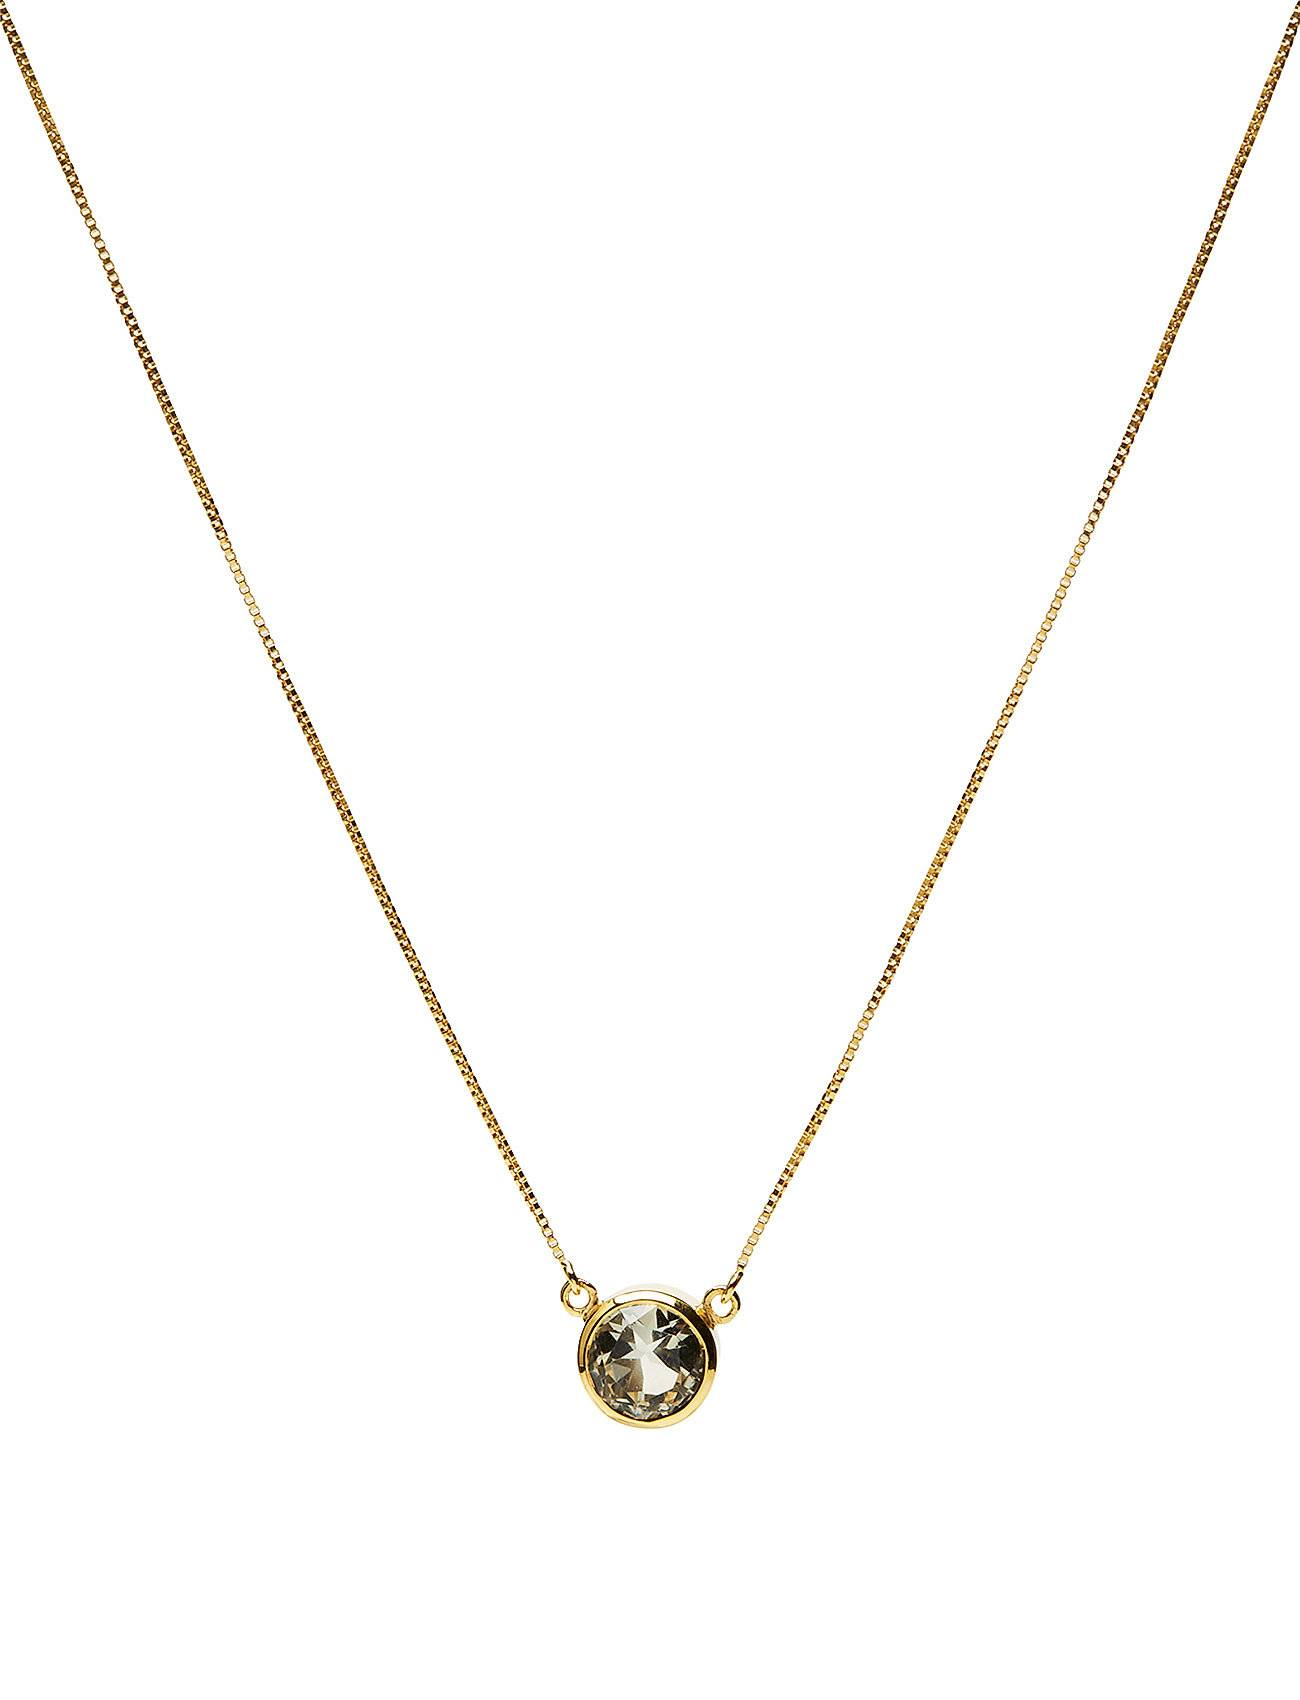 Syster P Lone Star Necklace Green Amethyst, Gold